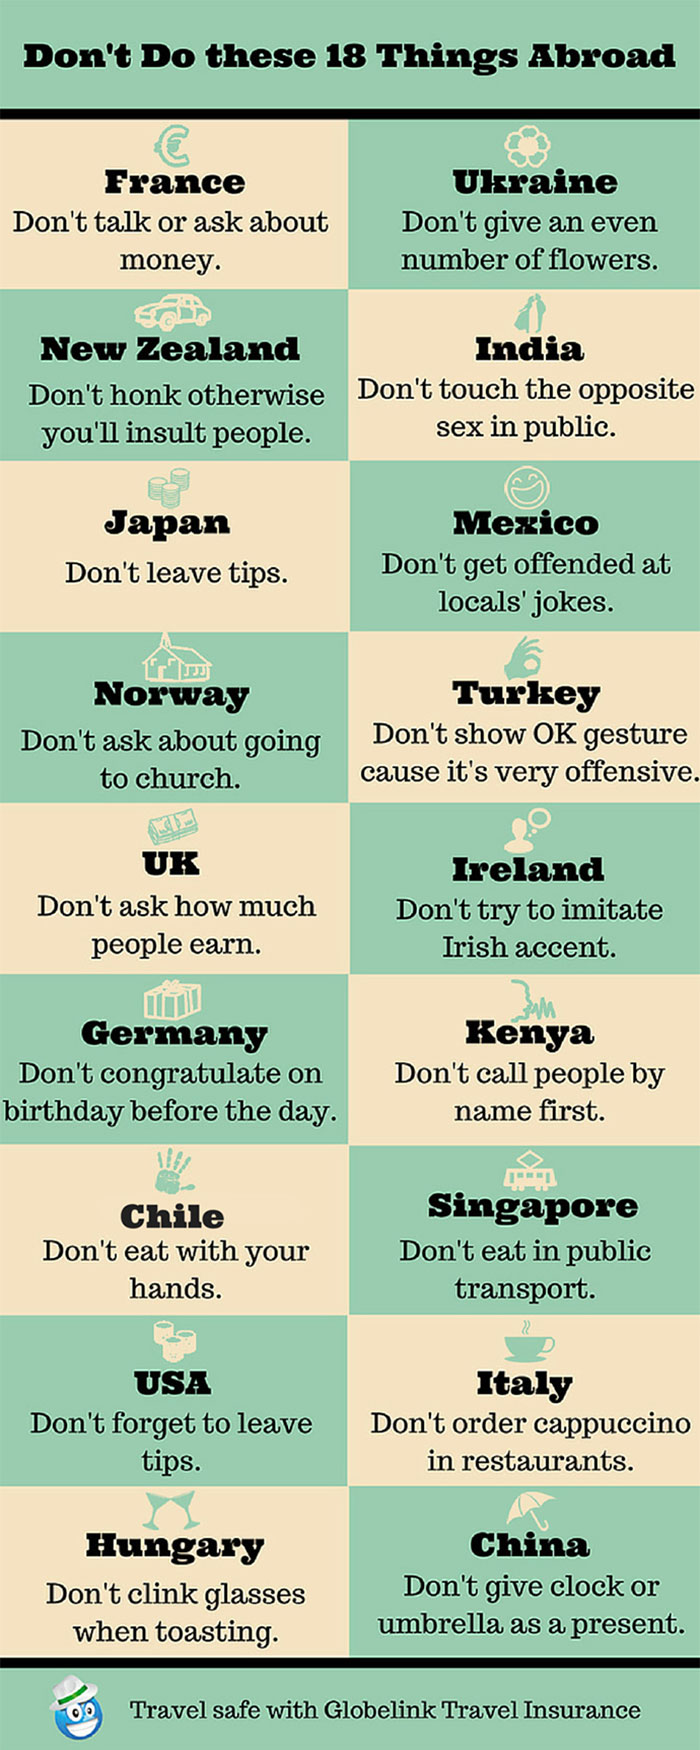 travel-advices-laws-traditions-customs-countries